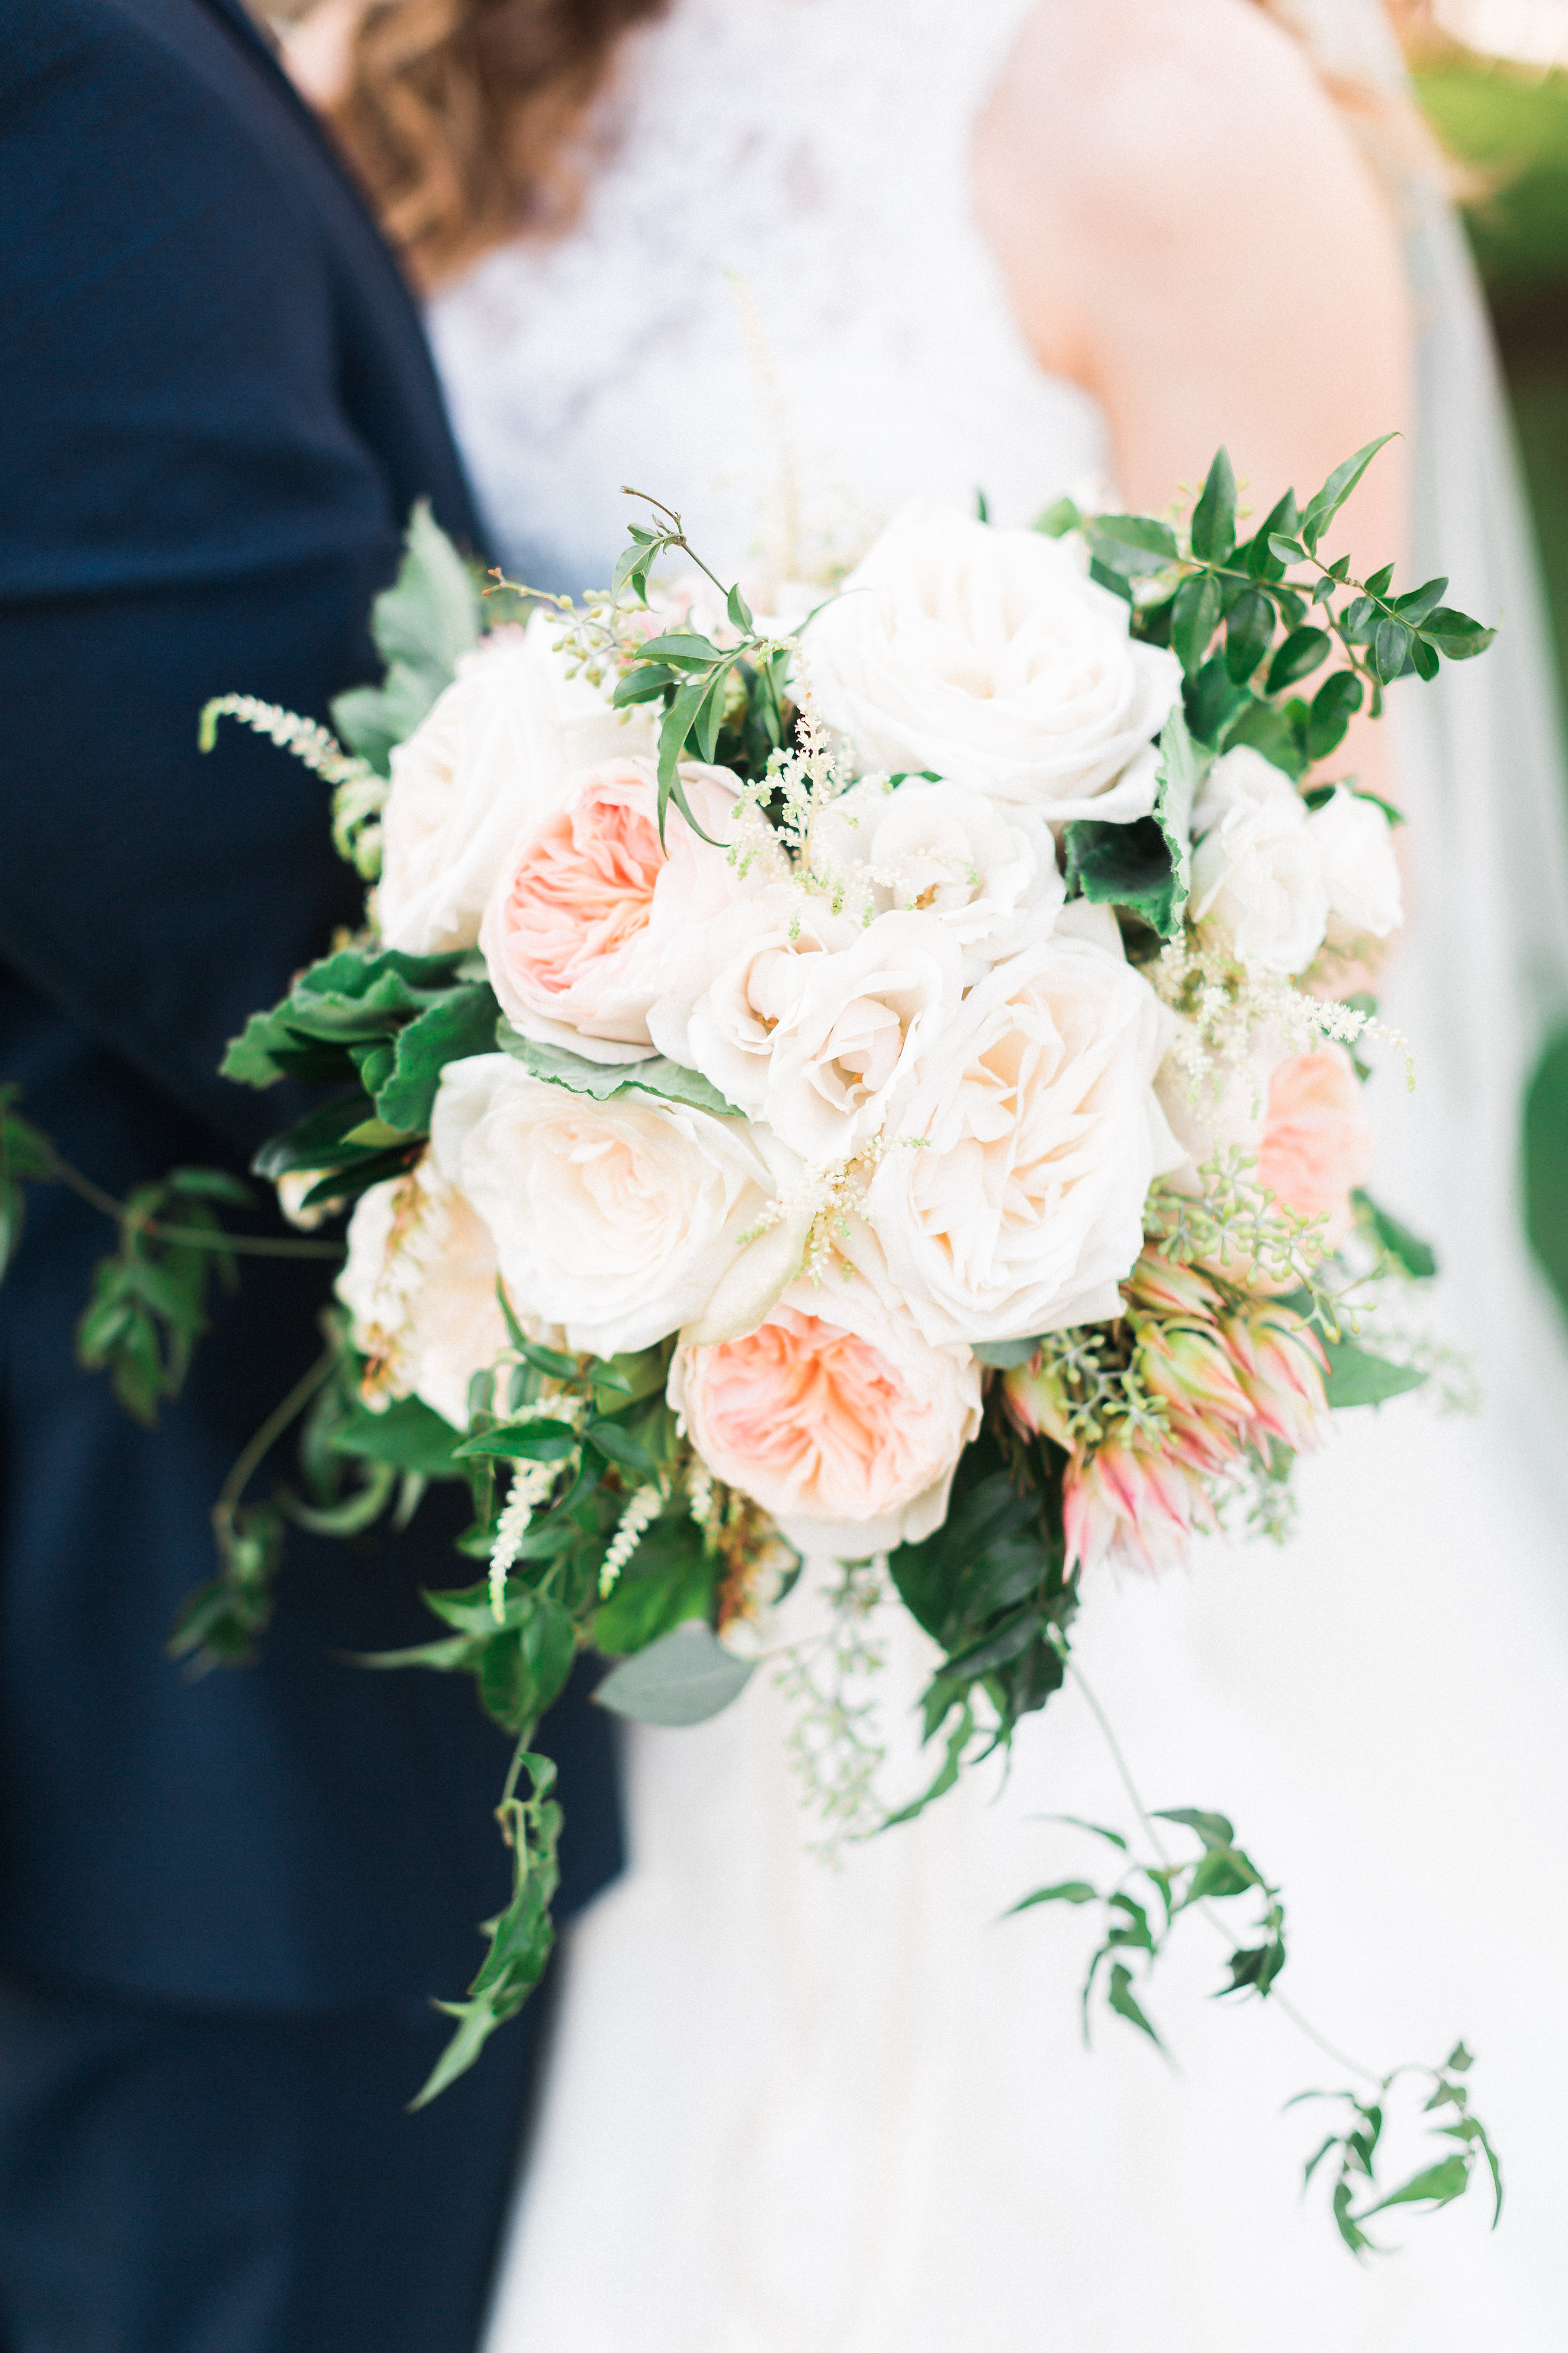 Garden rose bridal bouquet bouquets of austin - Garden rose bouquet ...